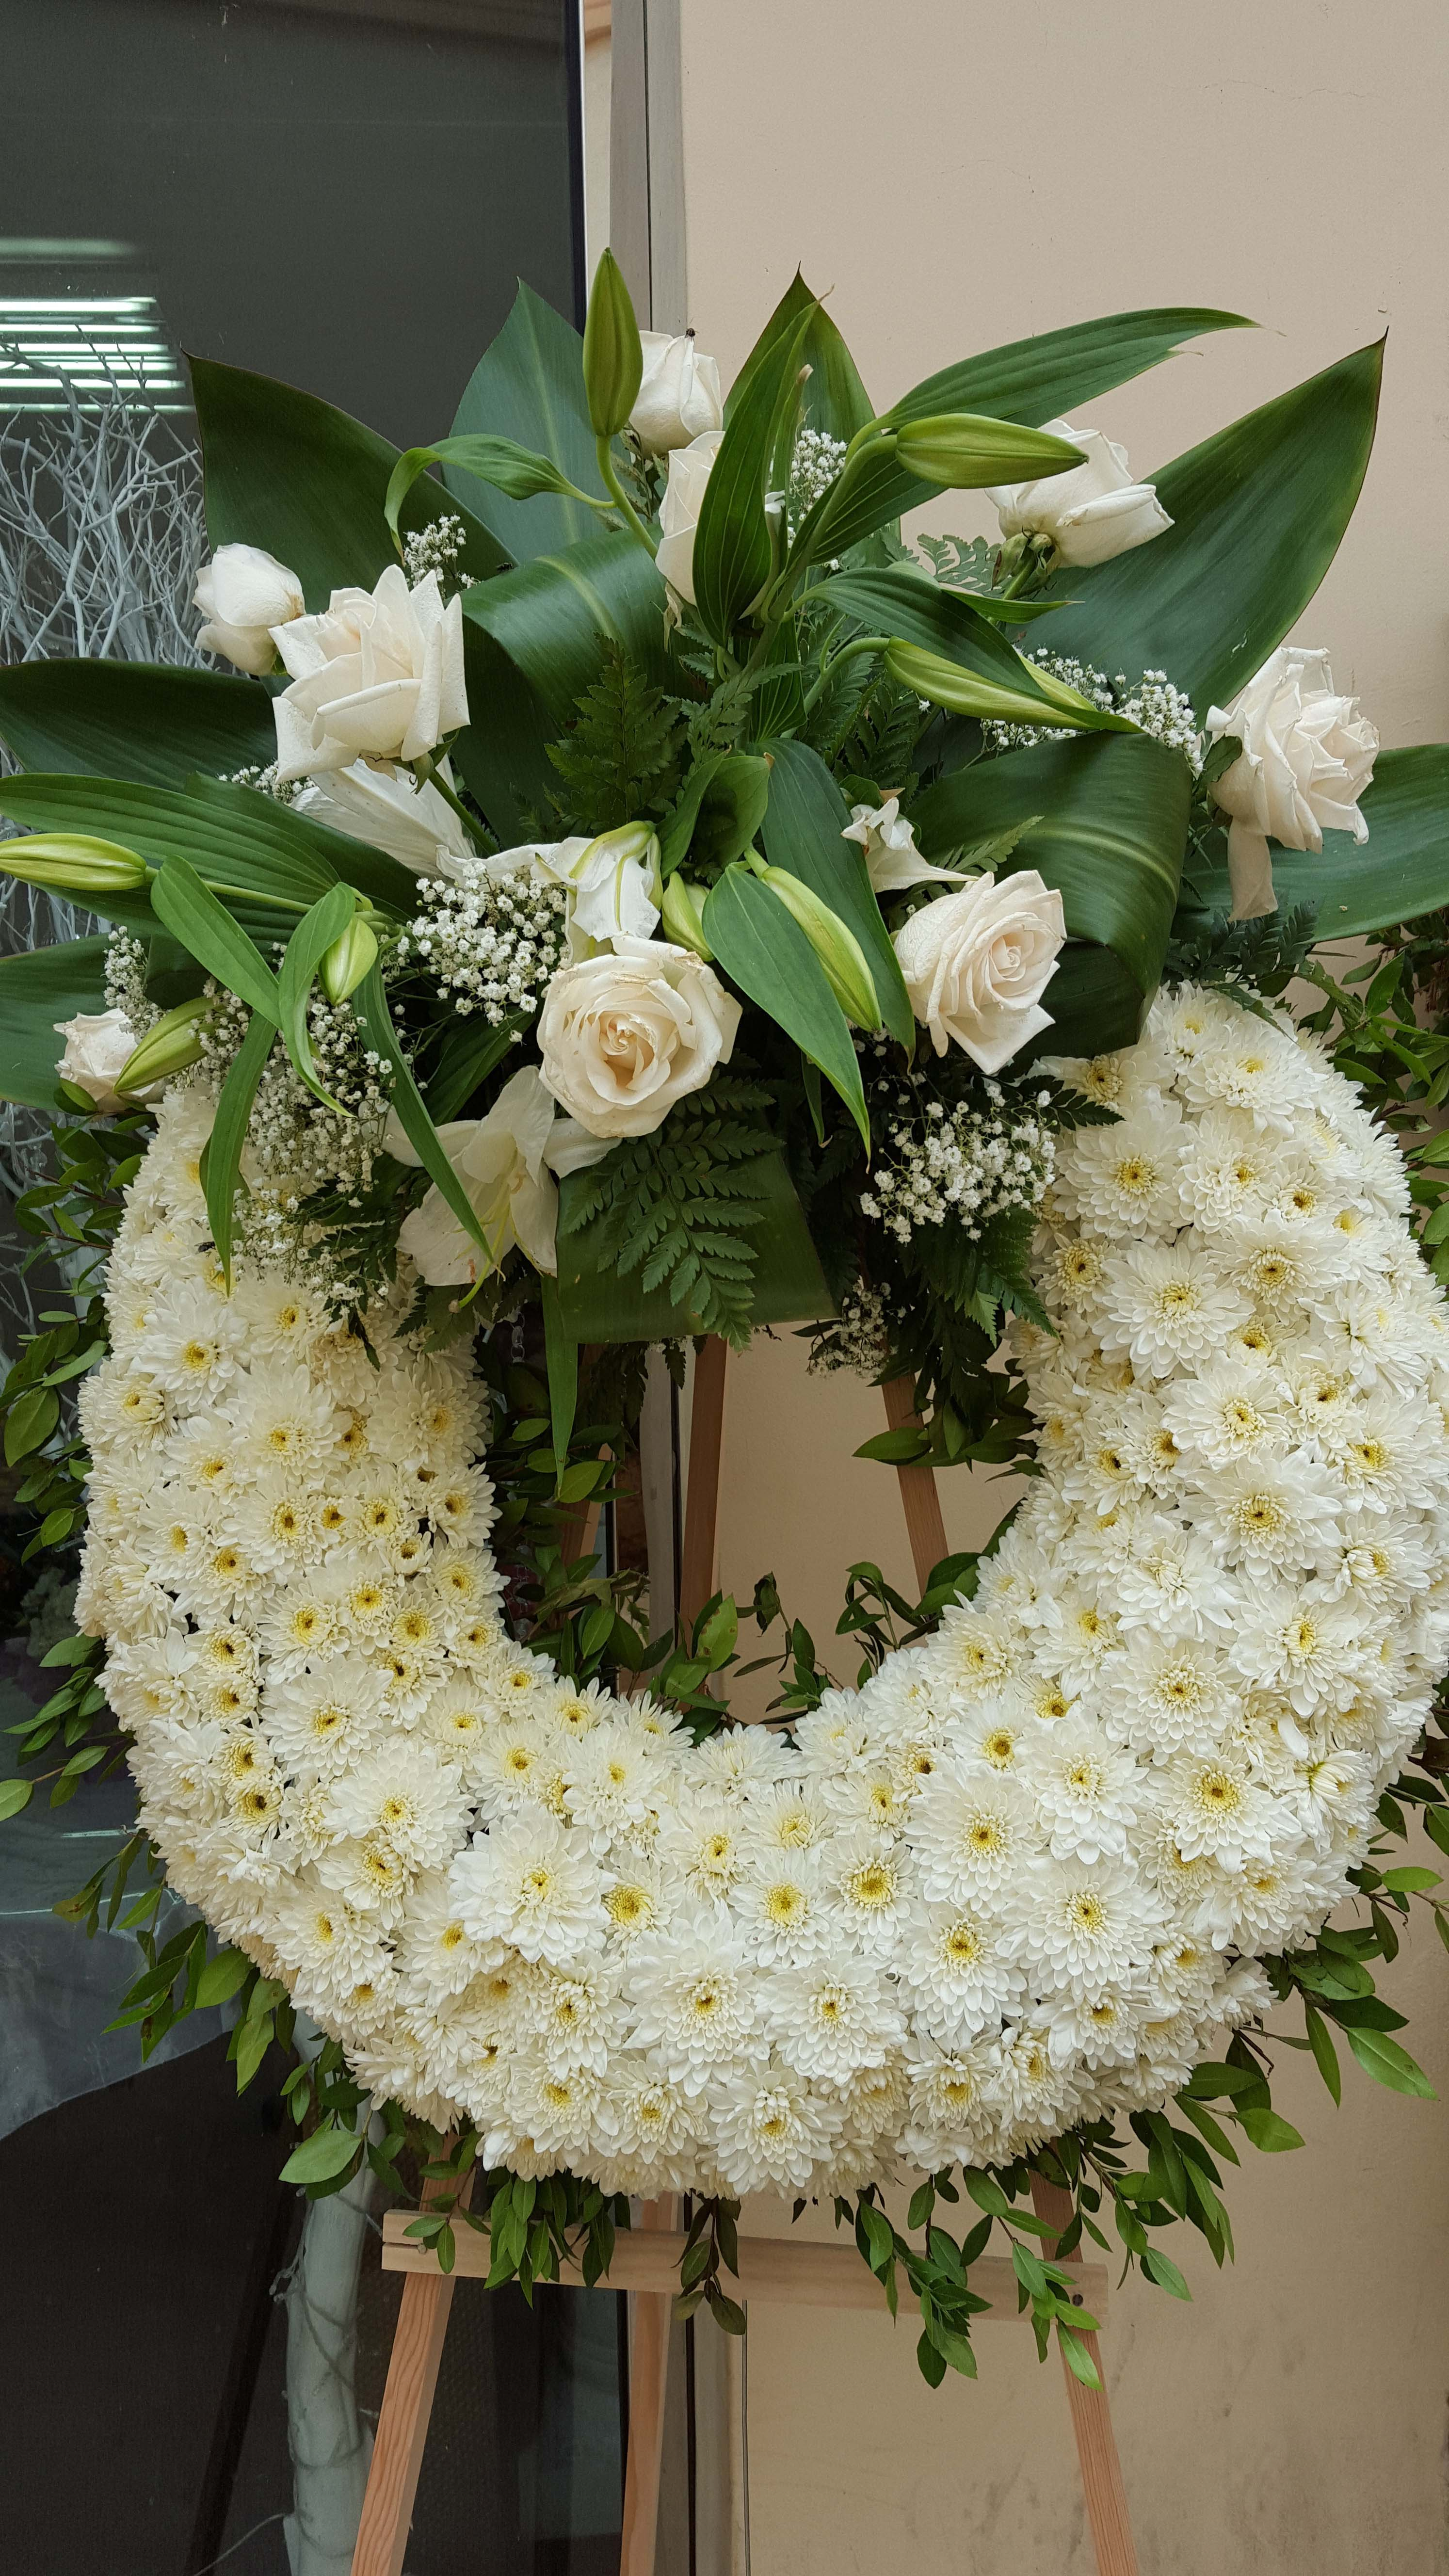 Cfm gives tips to buy cheap funeral flowers in las flower district a circular funeral wreath is a symbol of eternity solutioingenieria Image collections